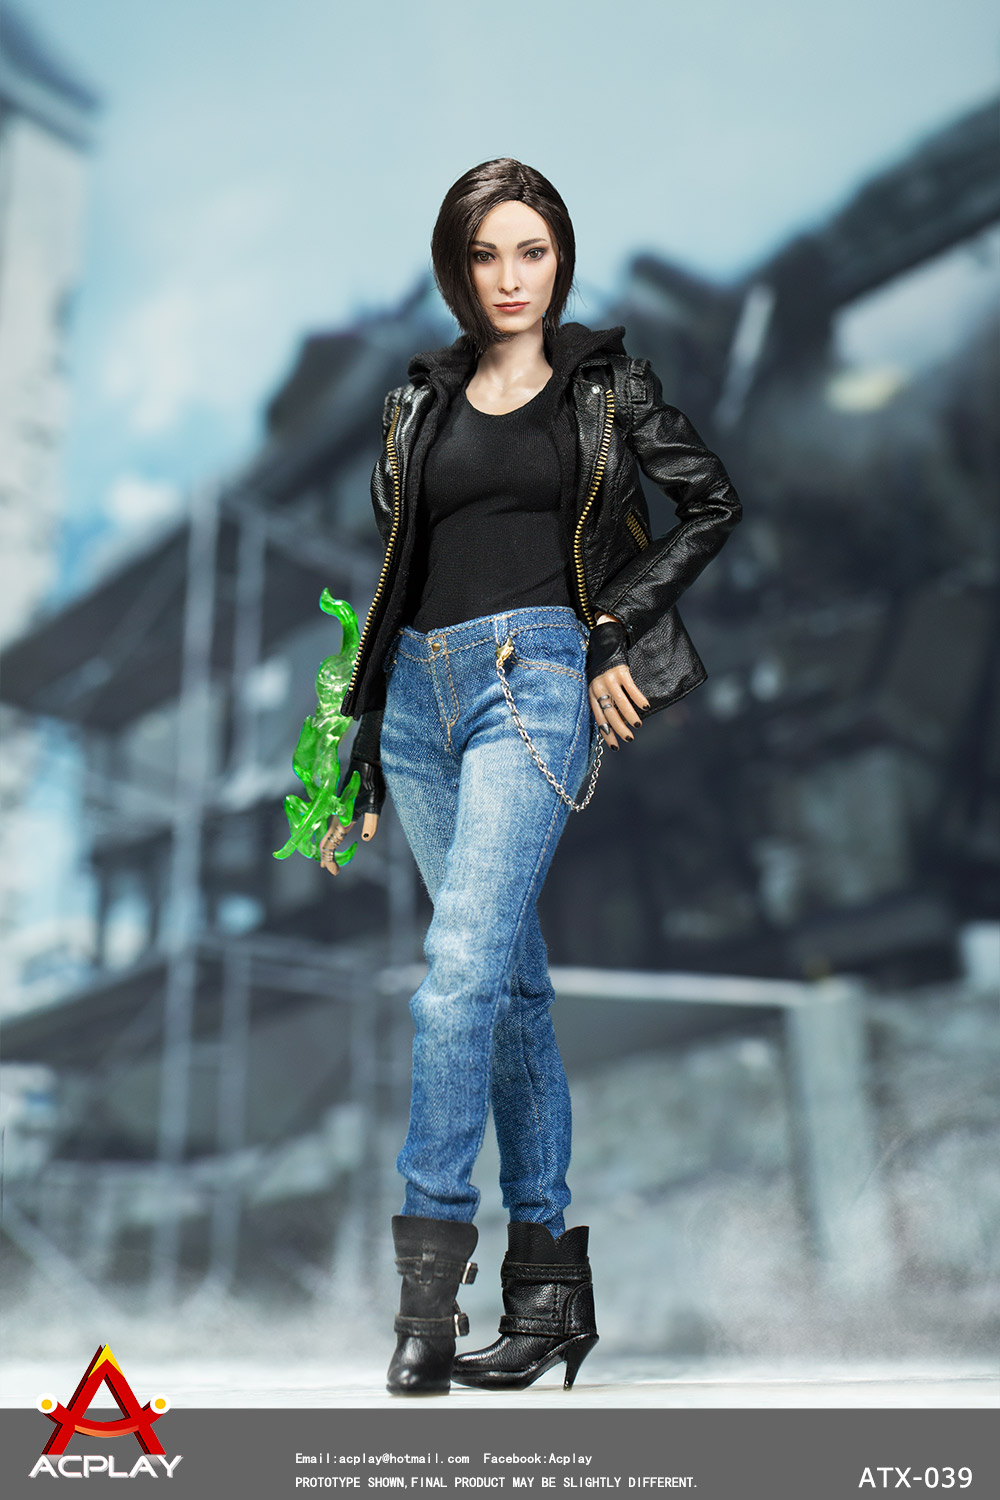 XMen - NEW PRODUCT: ACPlay new product: 1/6 ATX039 super hero magnetic girl box doll 3145